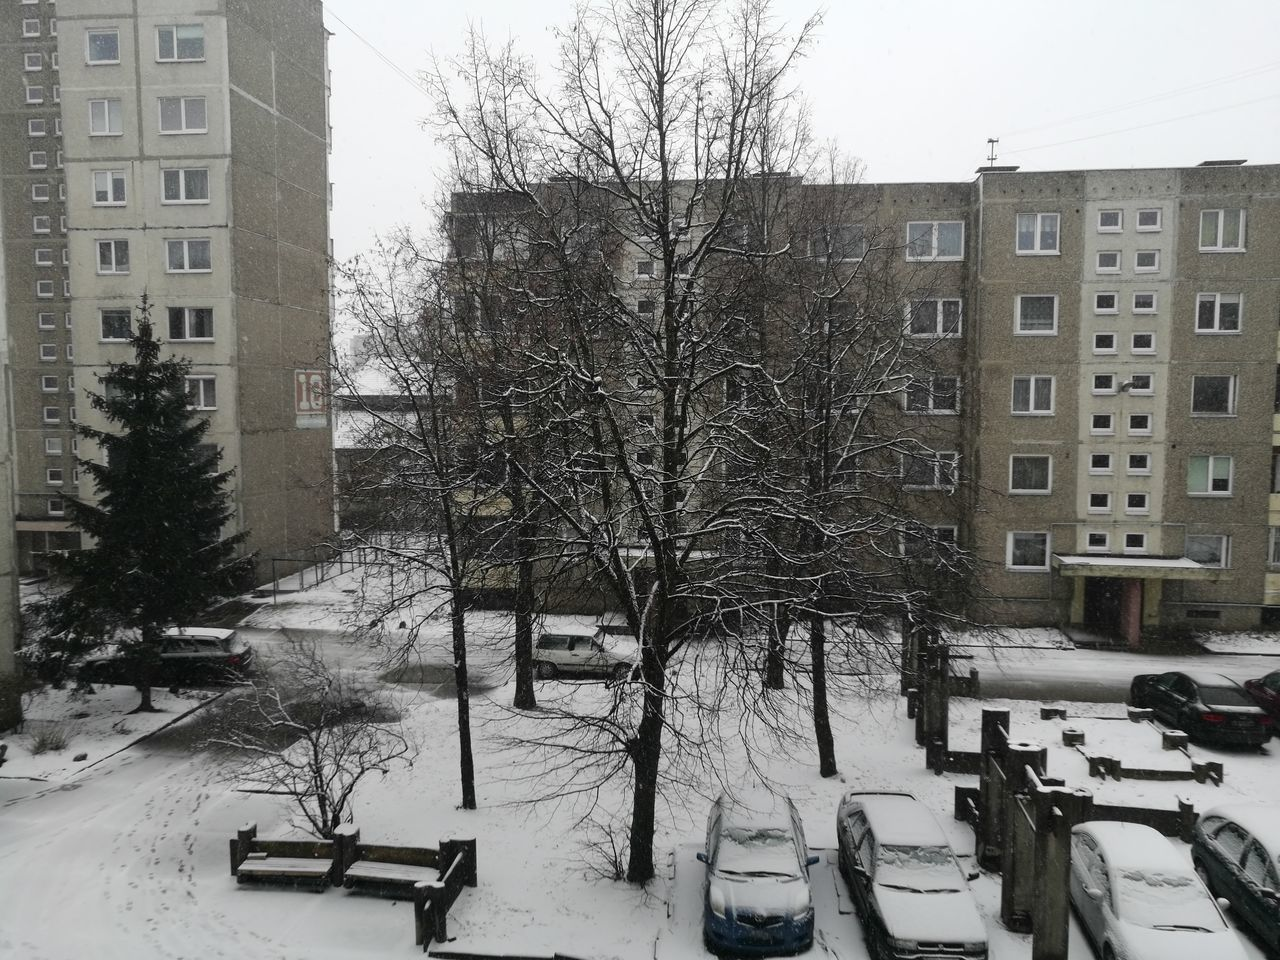 Apartment Blocks Apartment Buildings Architecture Bare Tree Bland Building Exterior Built Structure Cars Cold Temperature Day Flats Nature No People Outdoors Snow Snowing Tree Weather White Winter